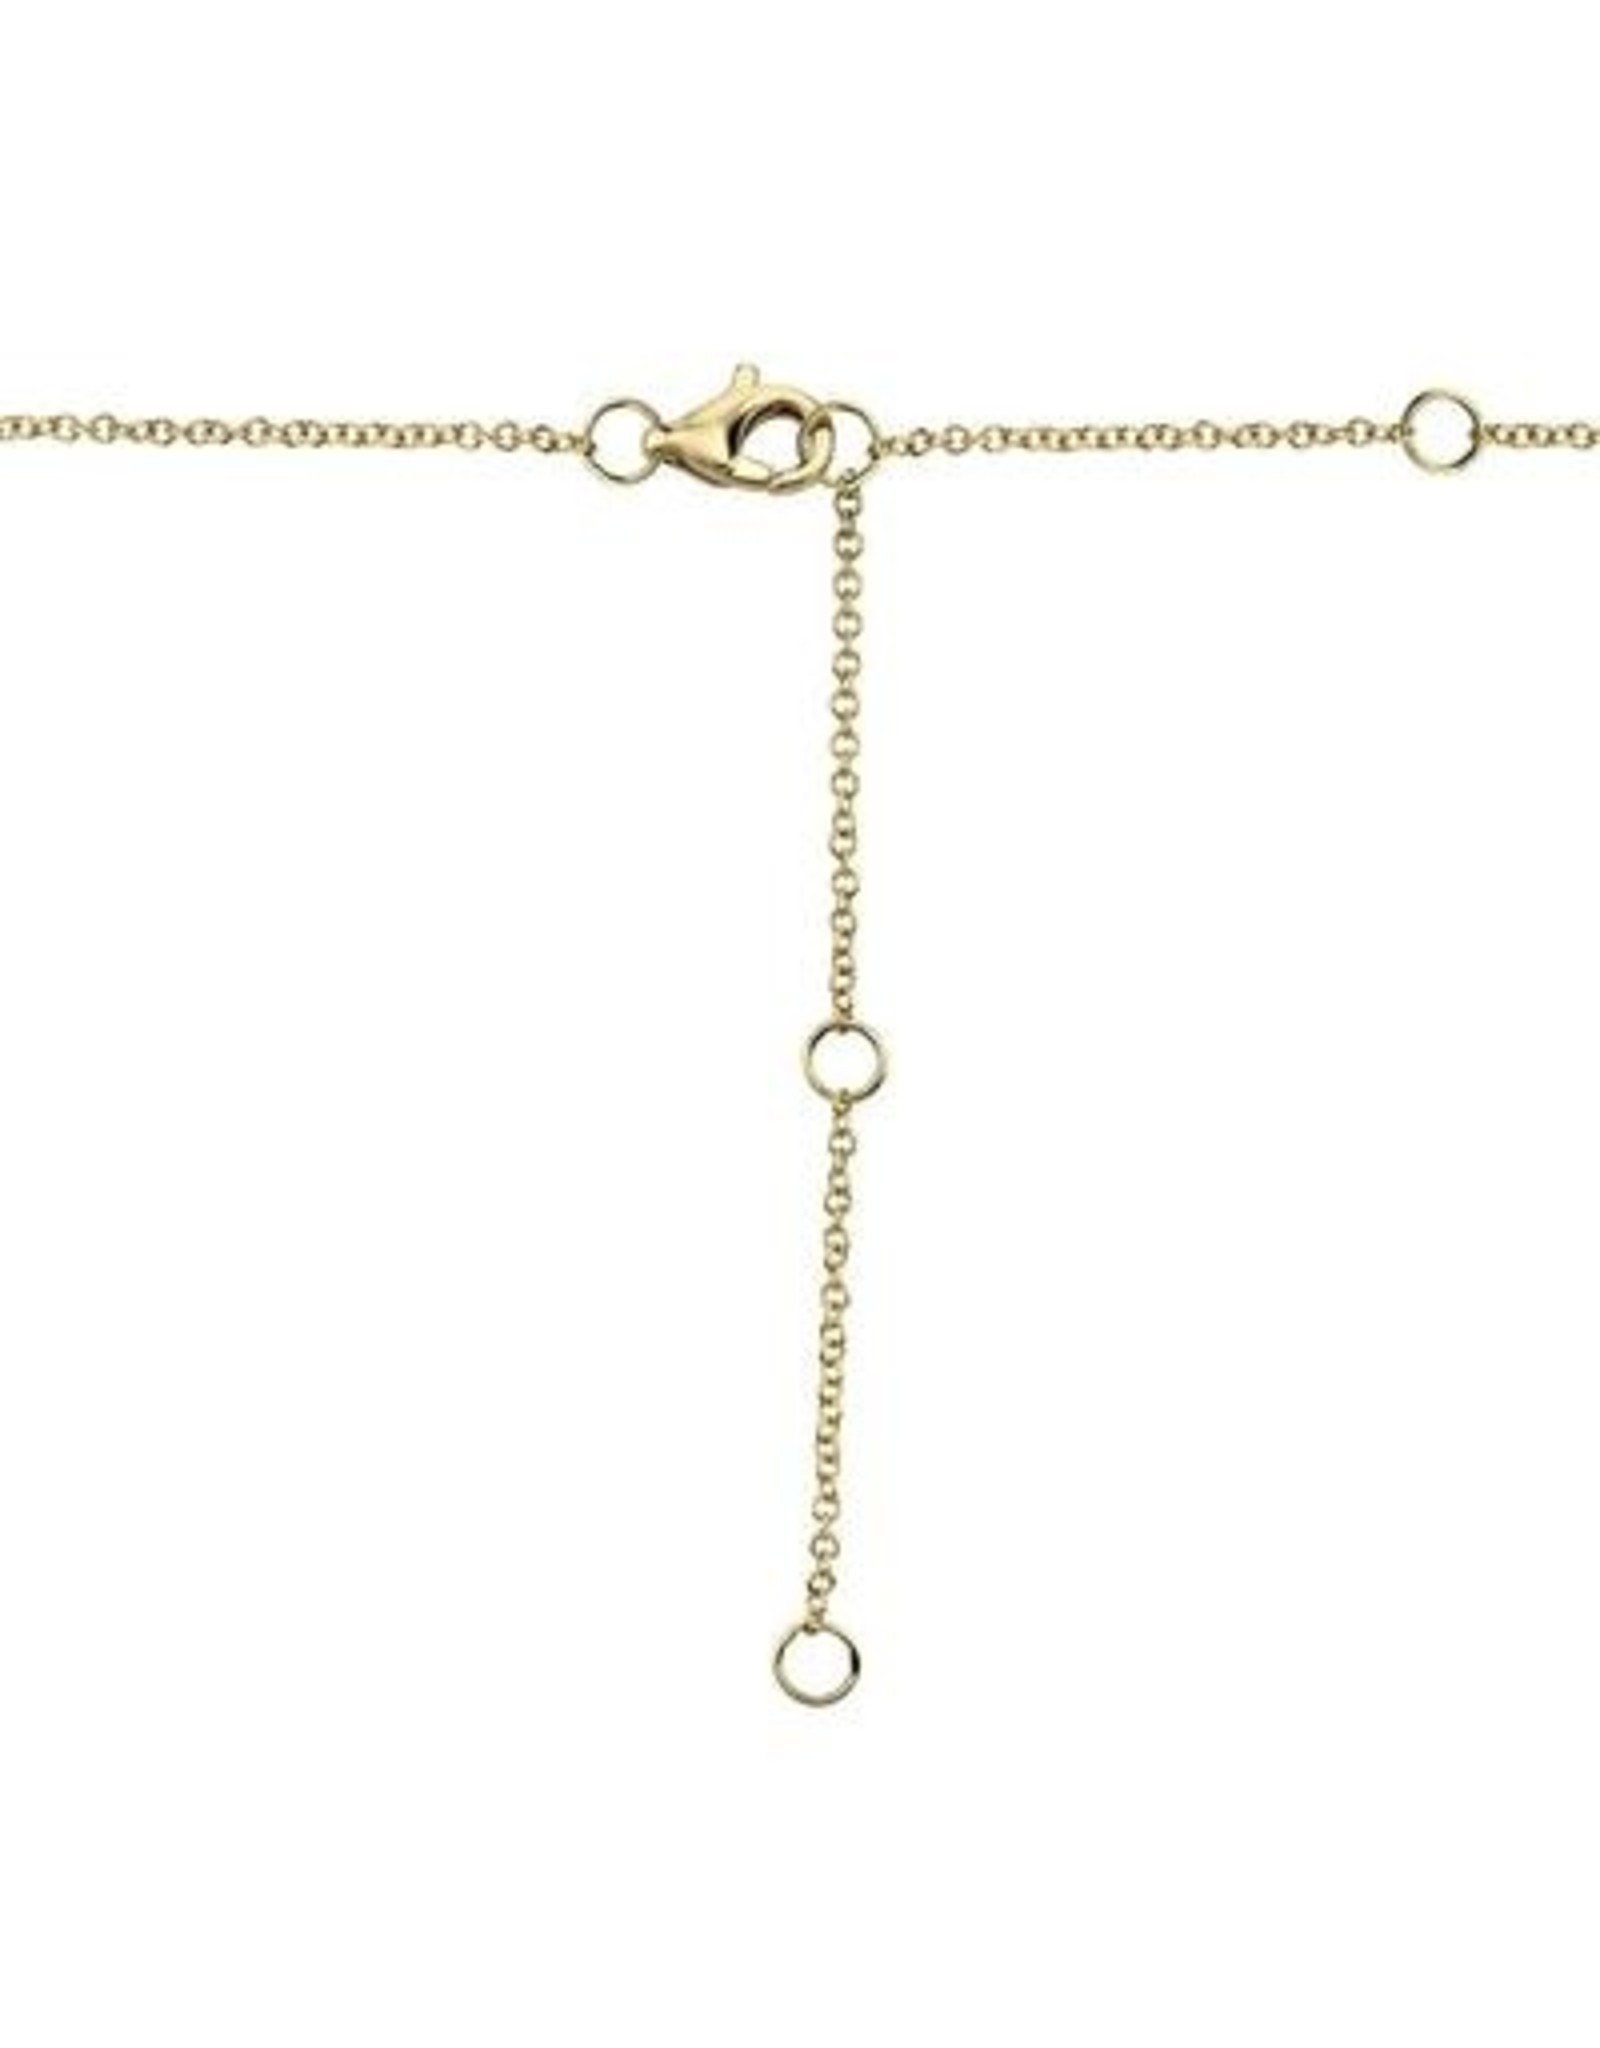 14K Yellow Gold Evil Eye Diamond, Onyx & Mother of Pearl Necklace, D: 0.29ct, OX: 0.28ct